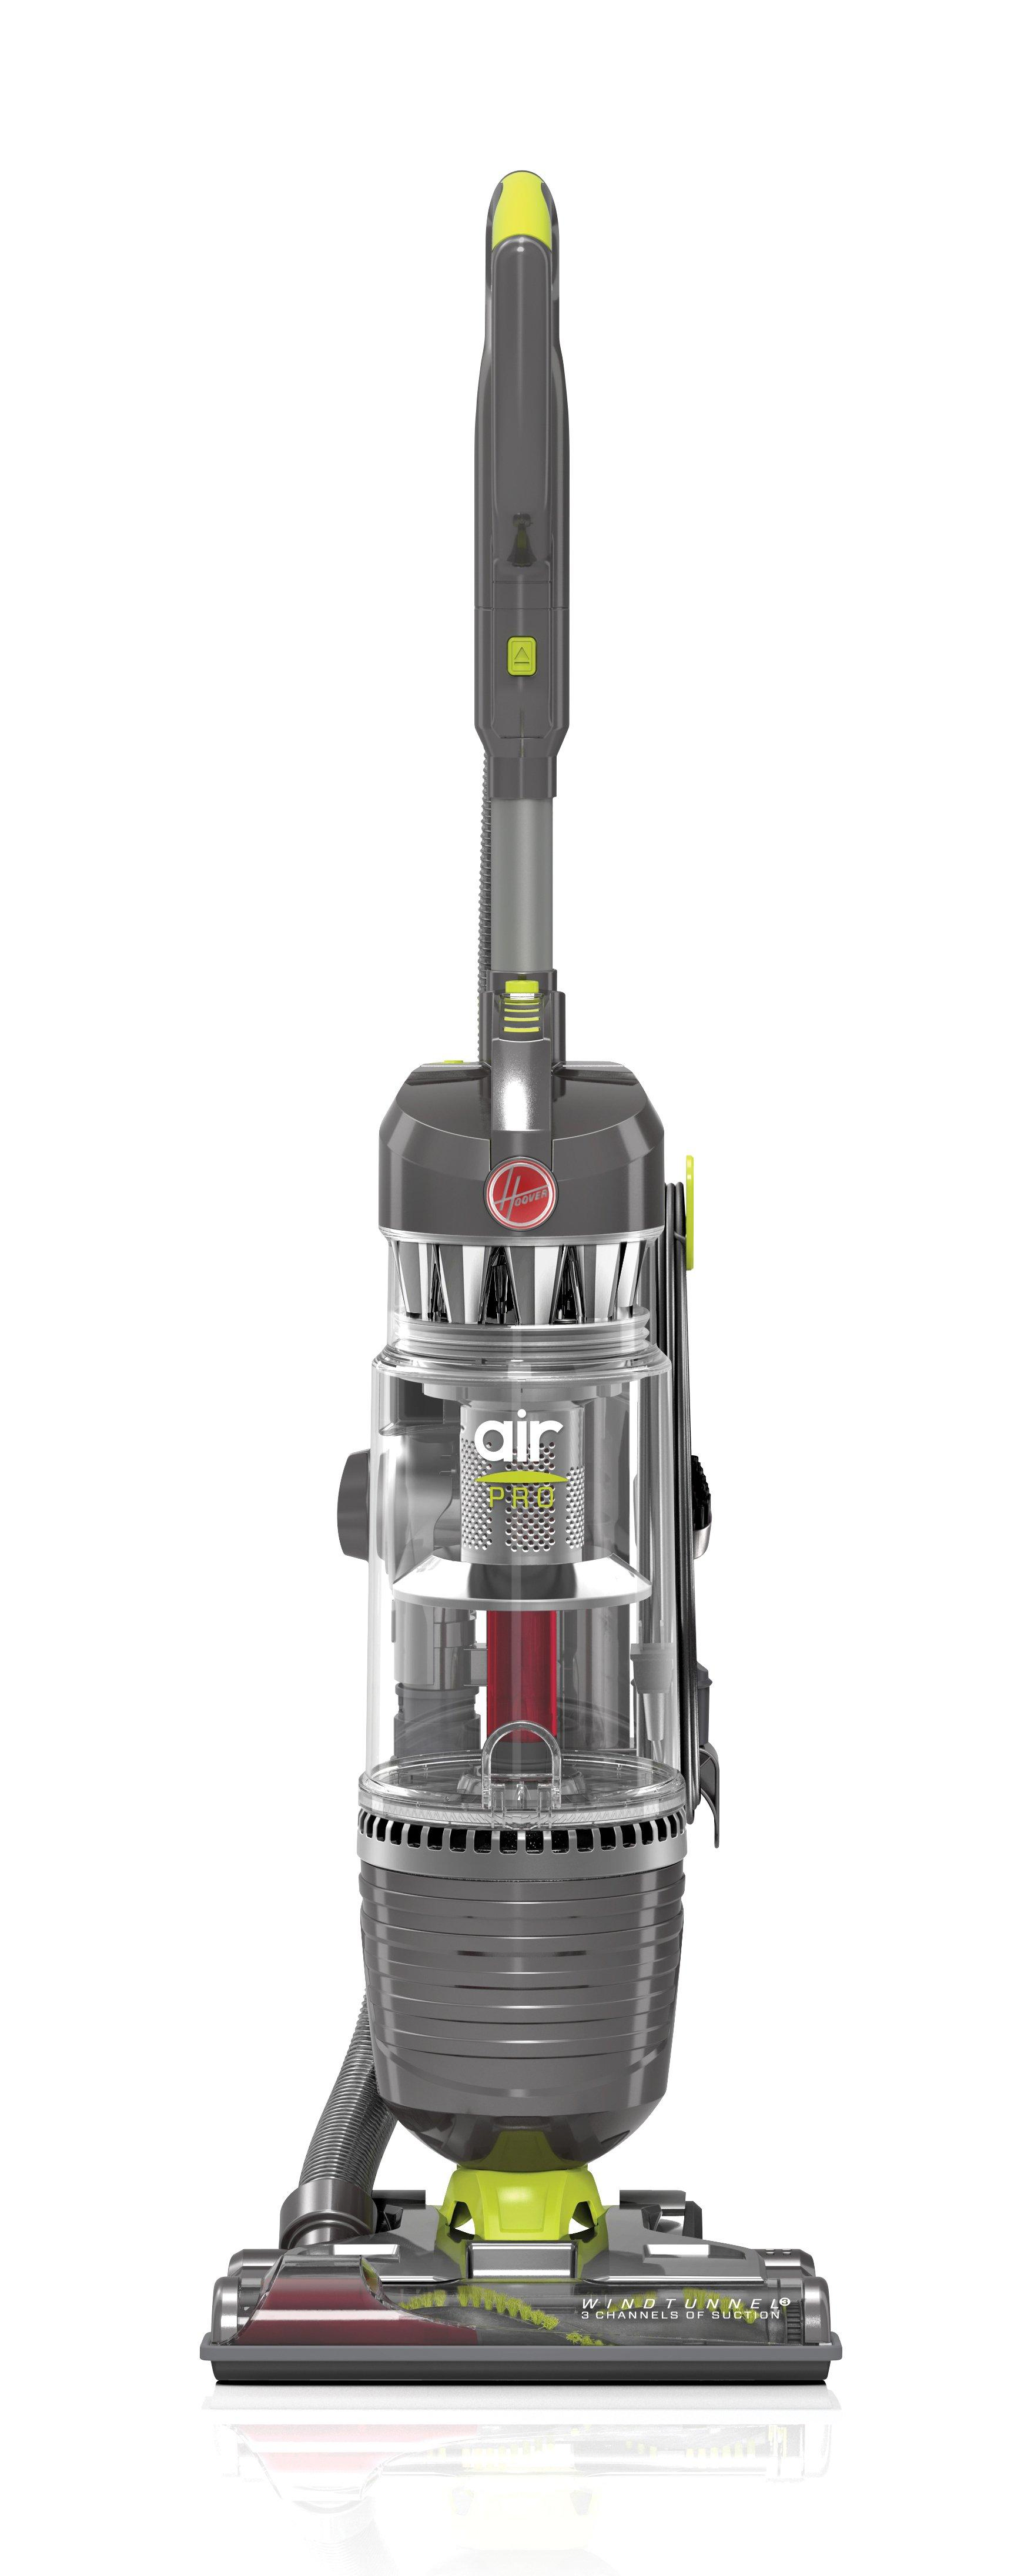 bagless vacuum cleaner hoover air pro bagless upright vacuum cleaner uh72450 ebay 13261